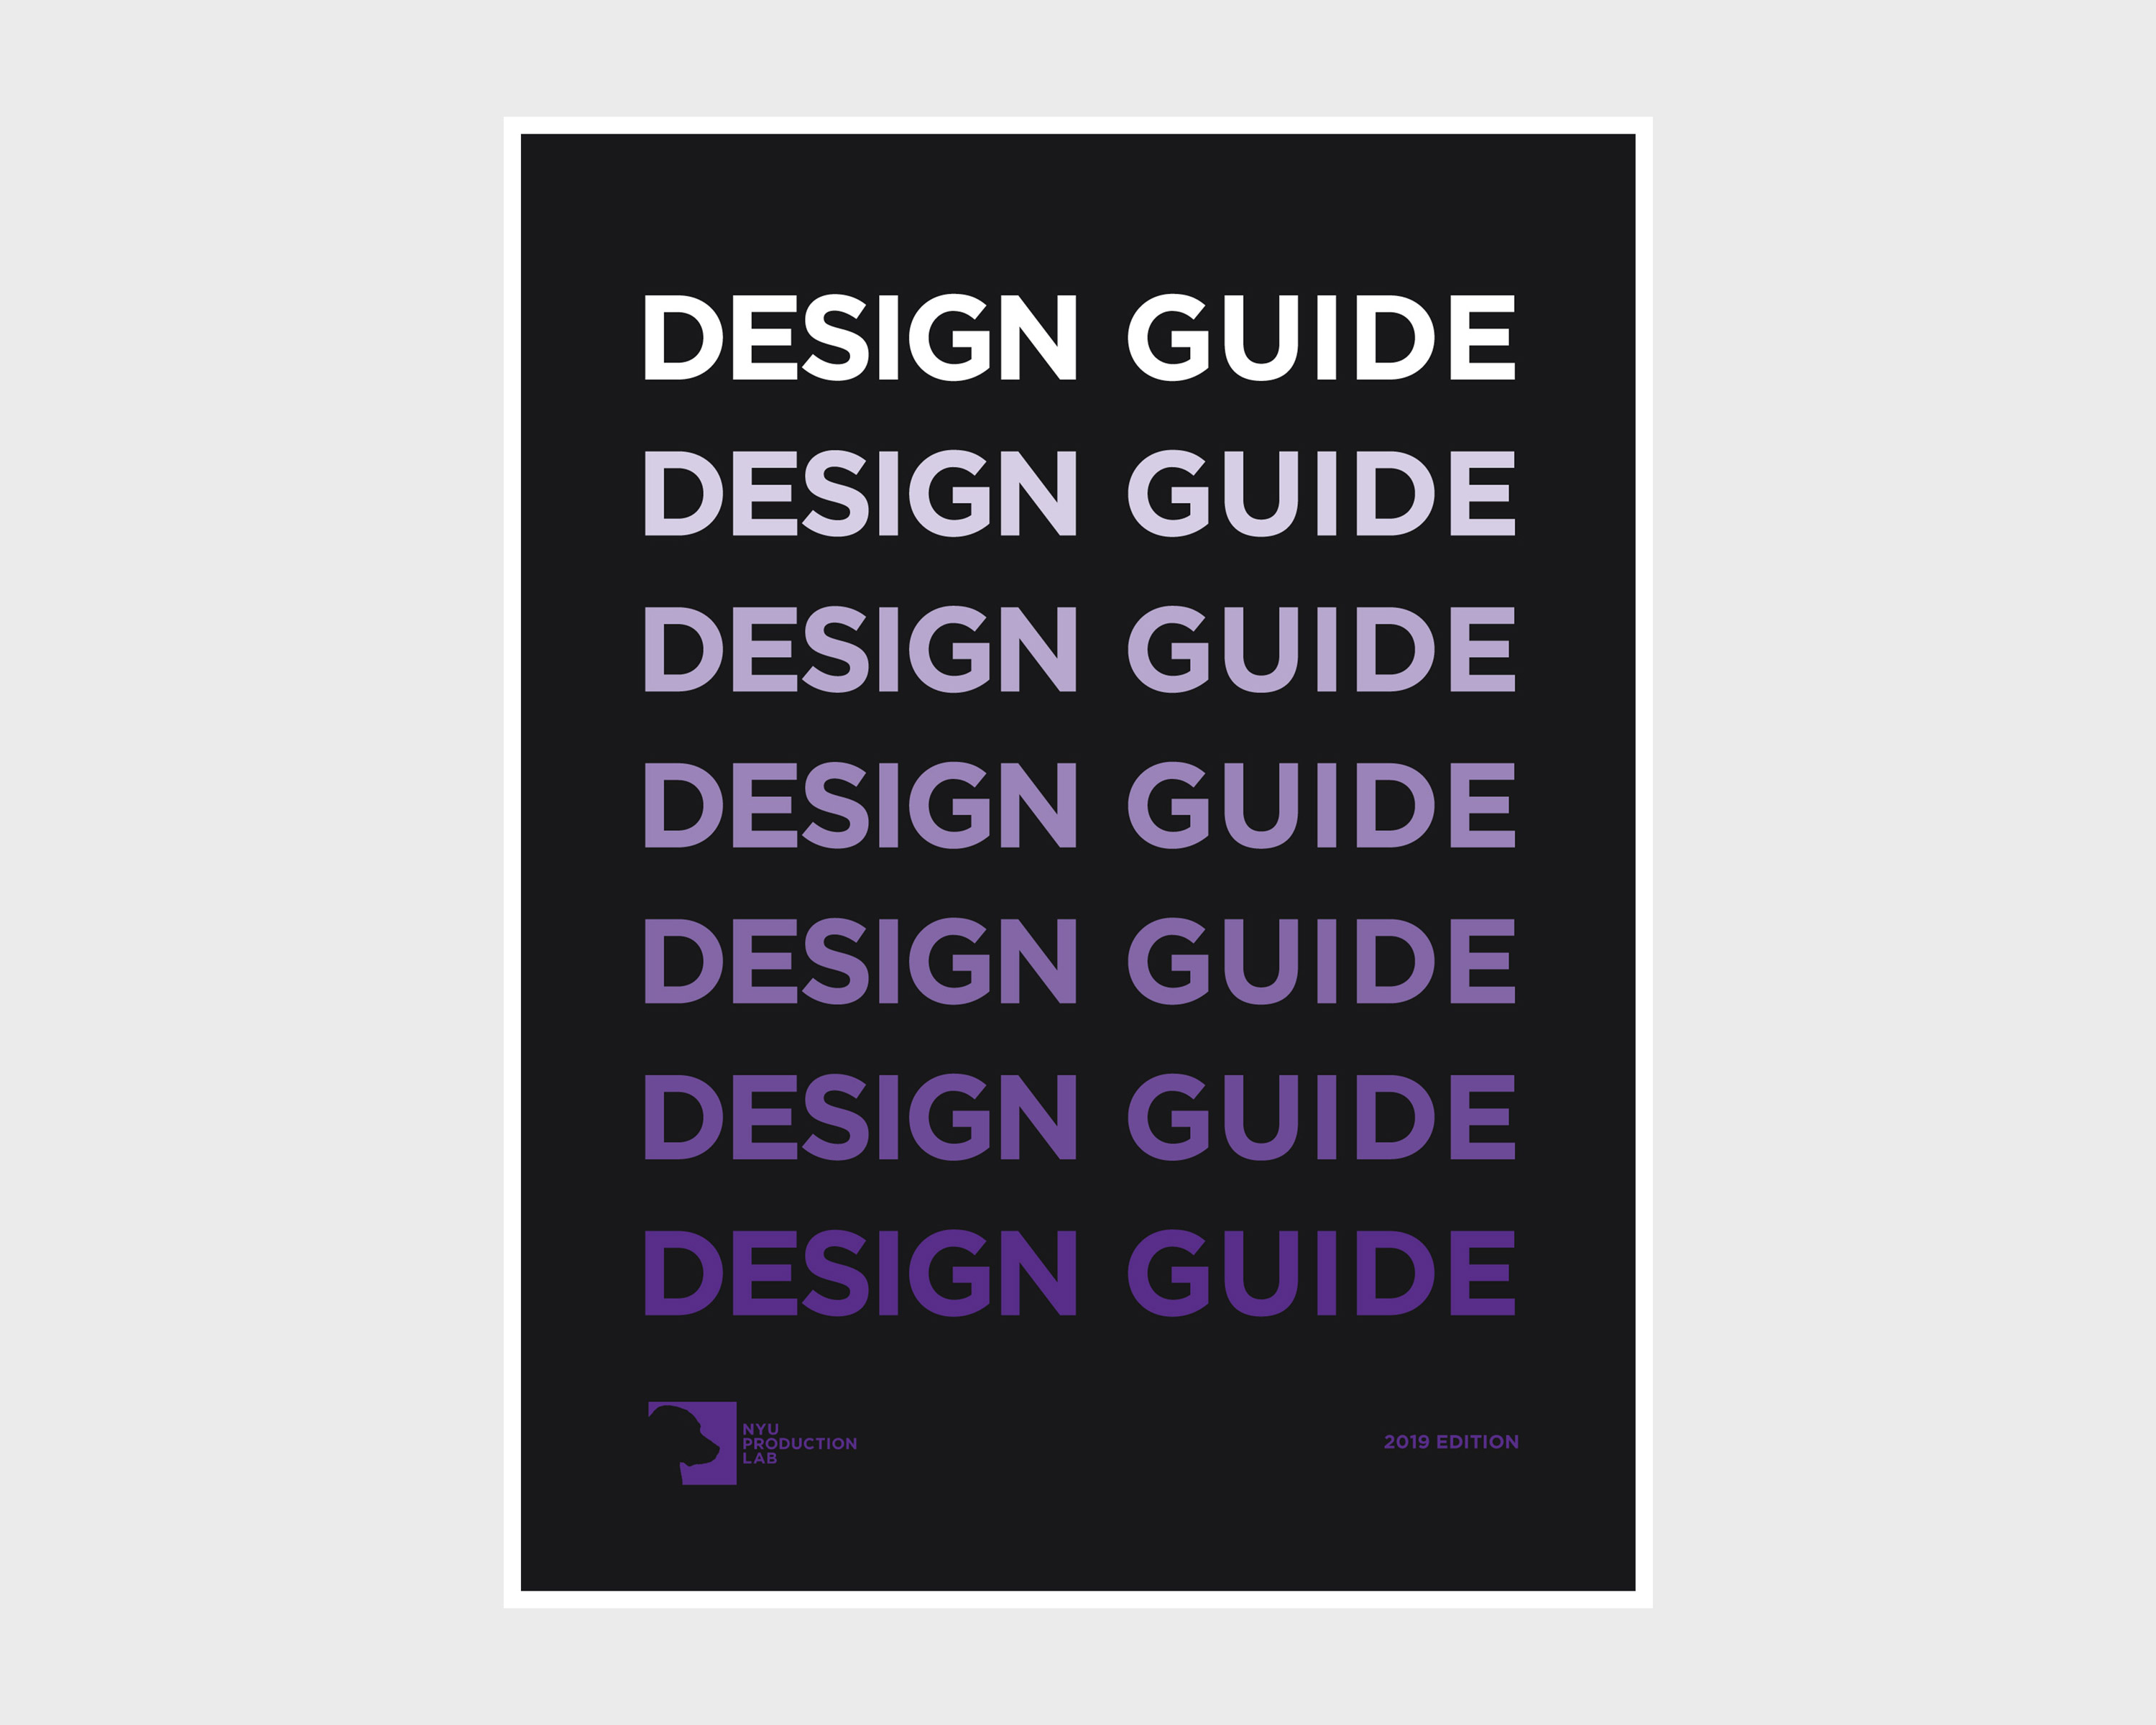 the final version of design guide